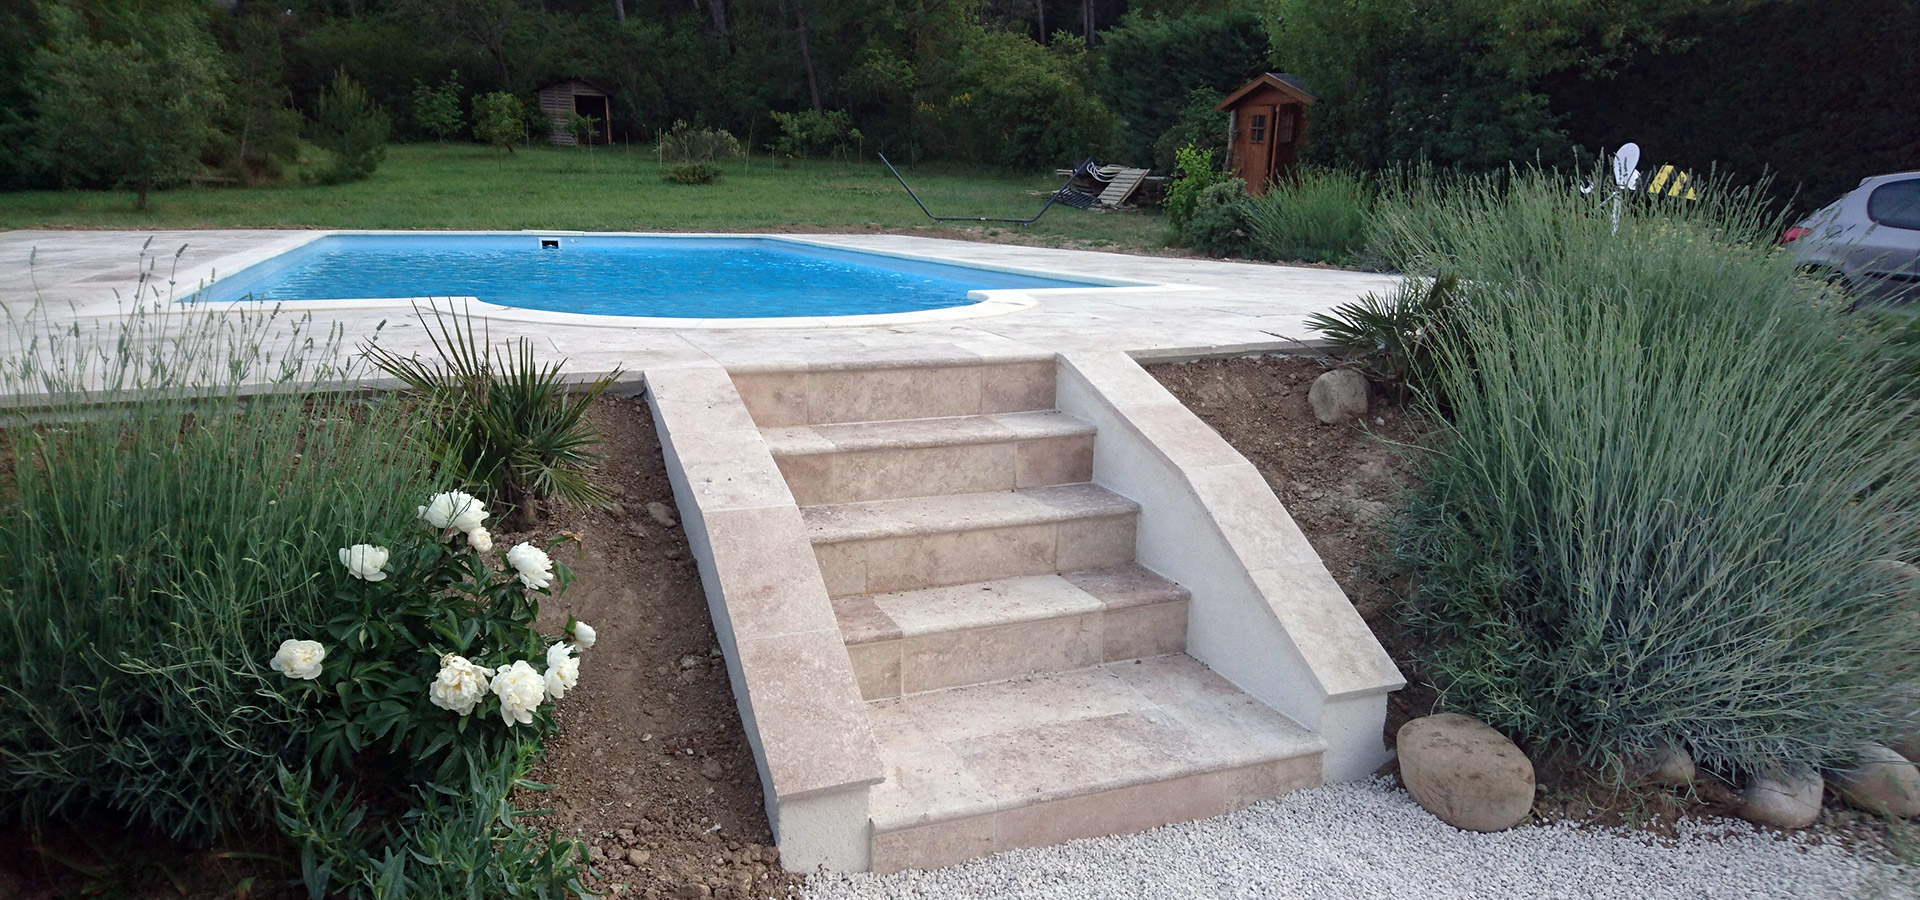 Am nagement ext rieur piscine ventabren rc entreprise - Amenagement exterieur piscine ...